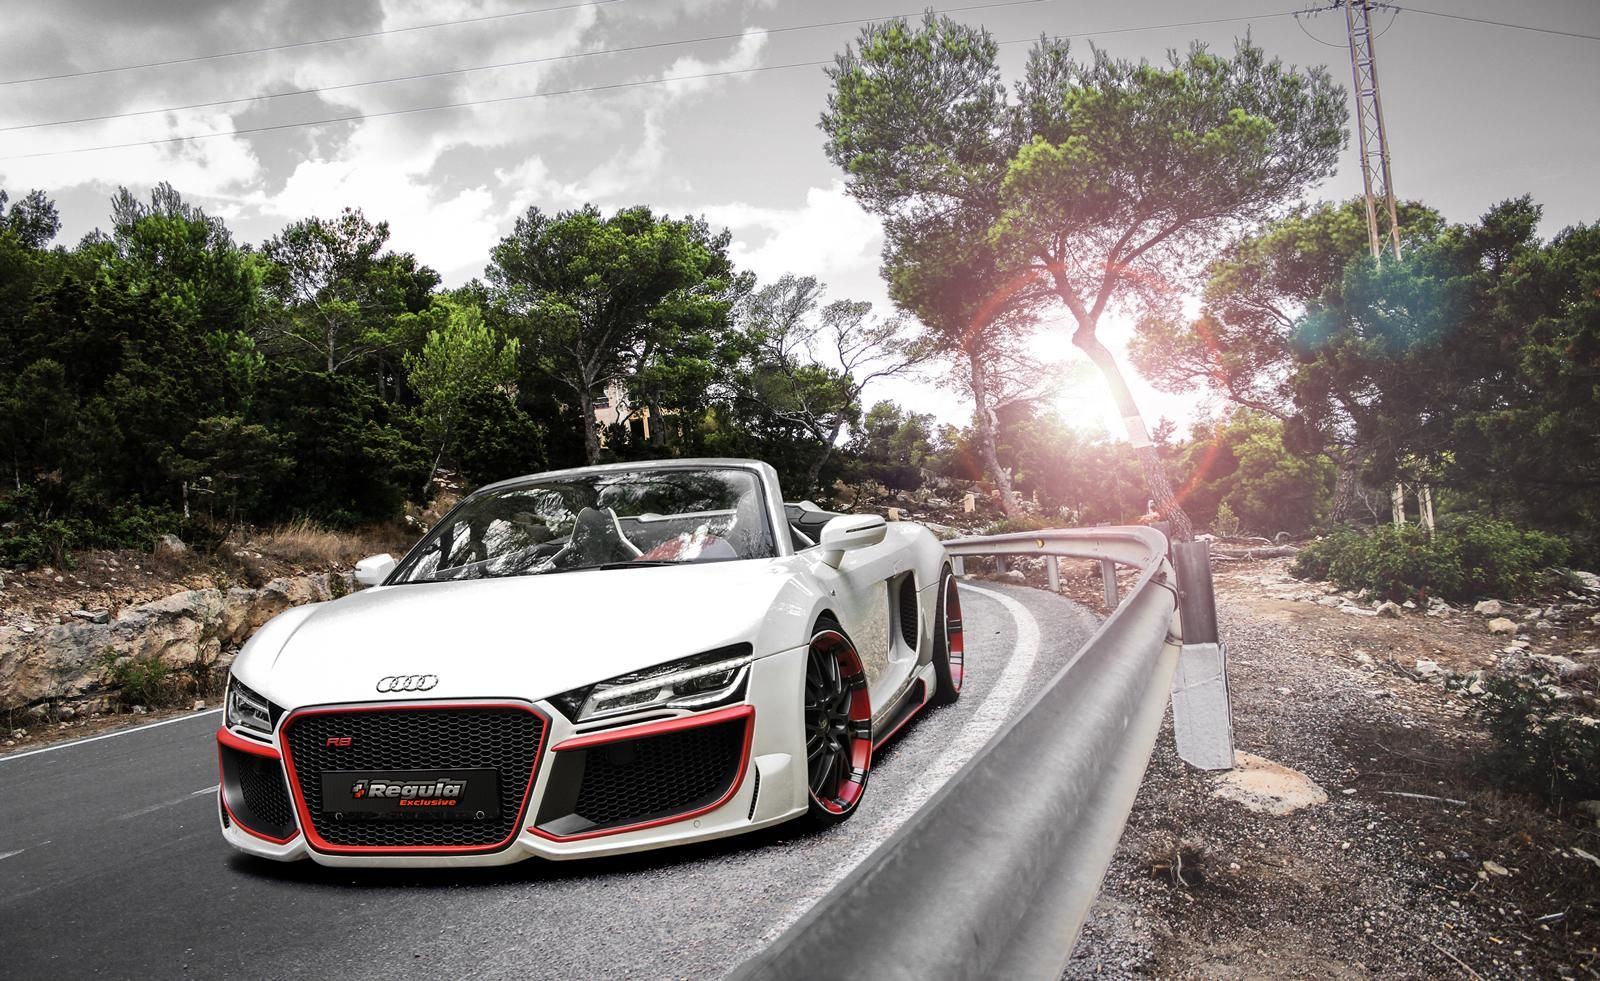 Regula exclusive audi r8 http www modifiedperformanceparts com regula